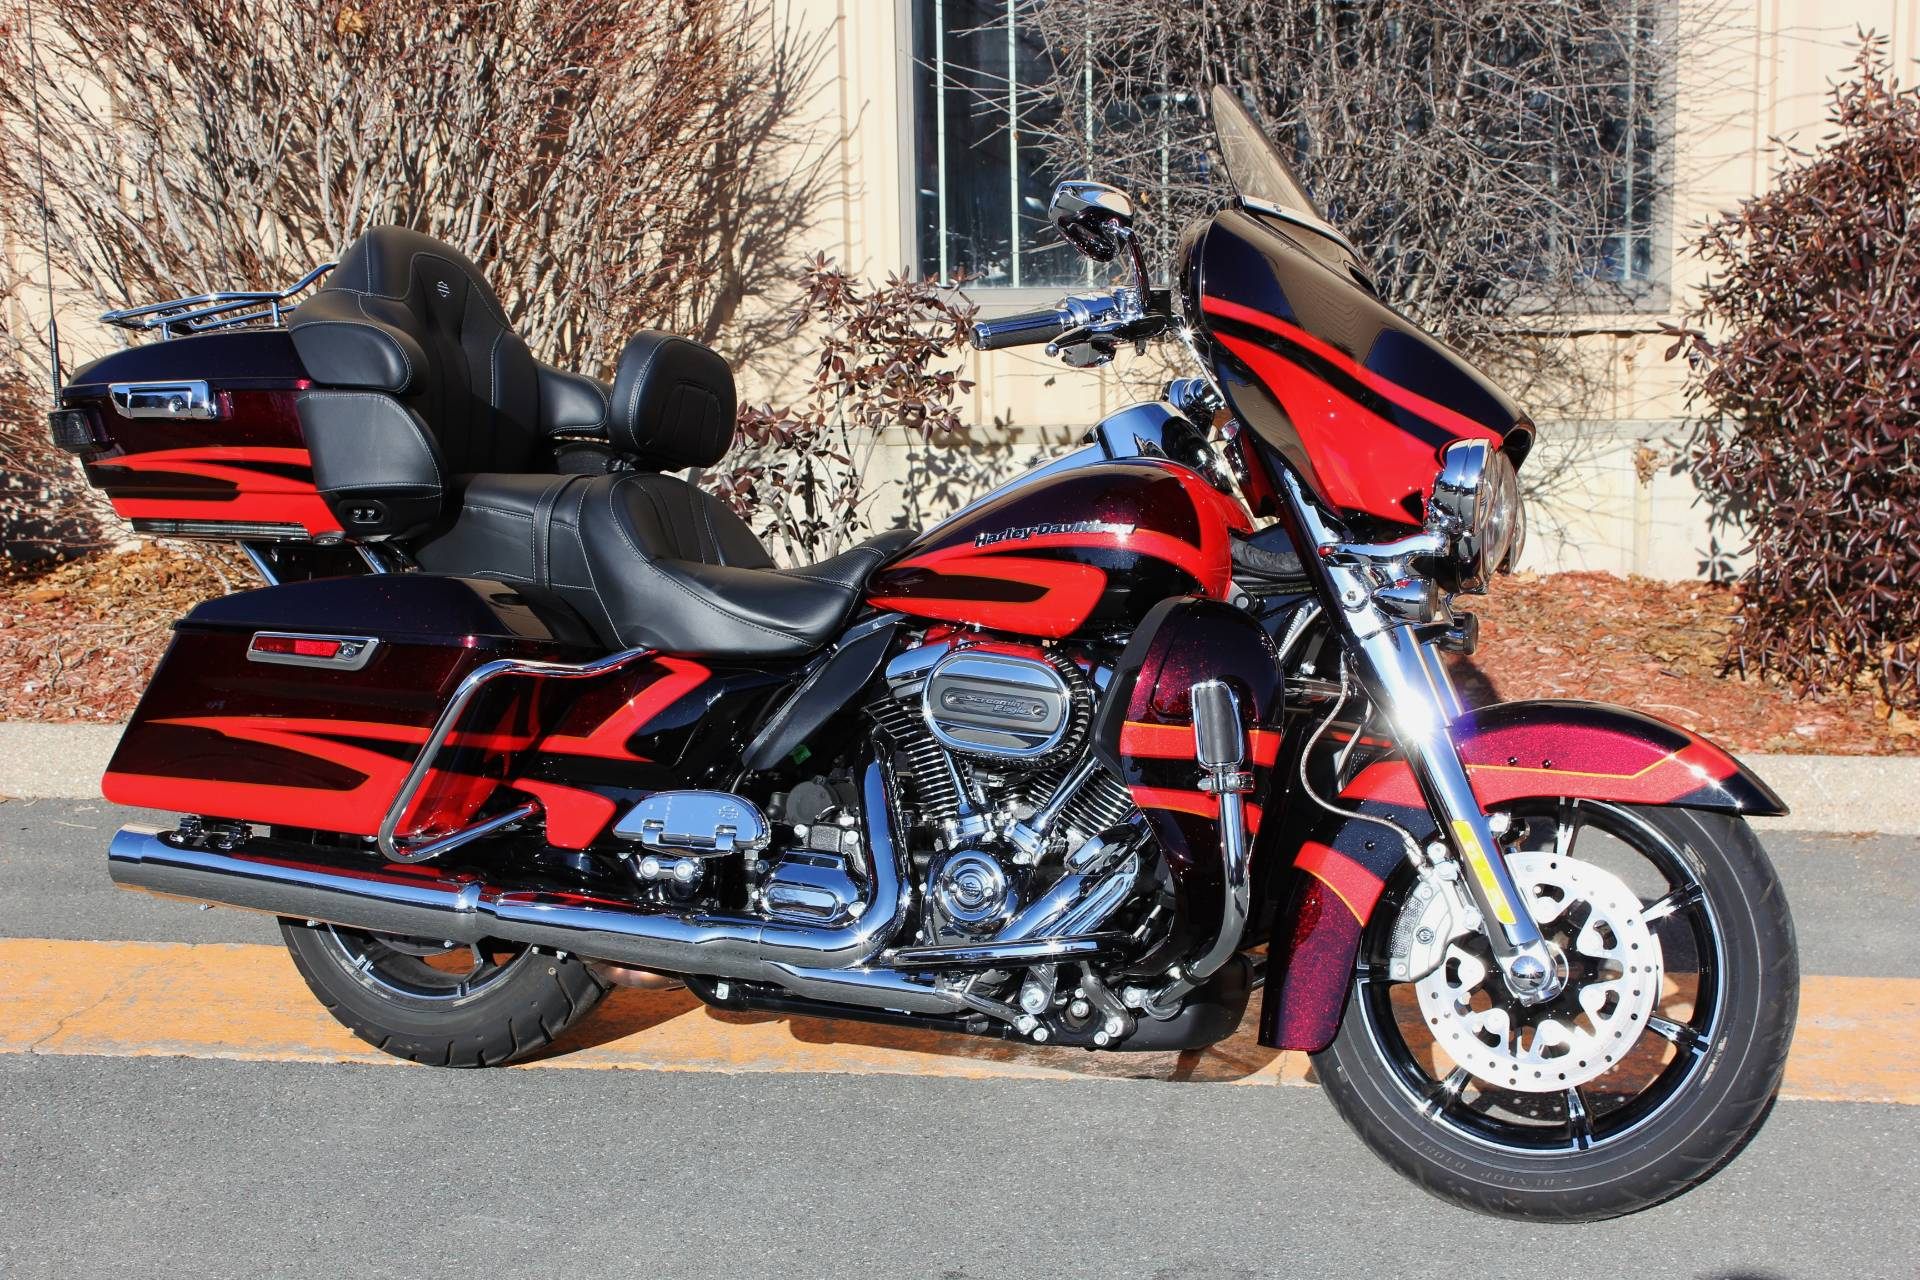 2017 Harley Davidson Cvo Limited In Pittsfield Machusetts